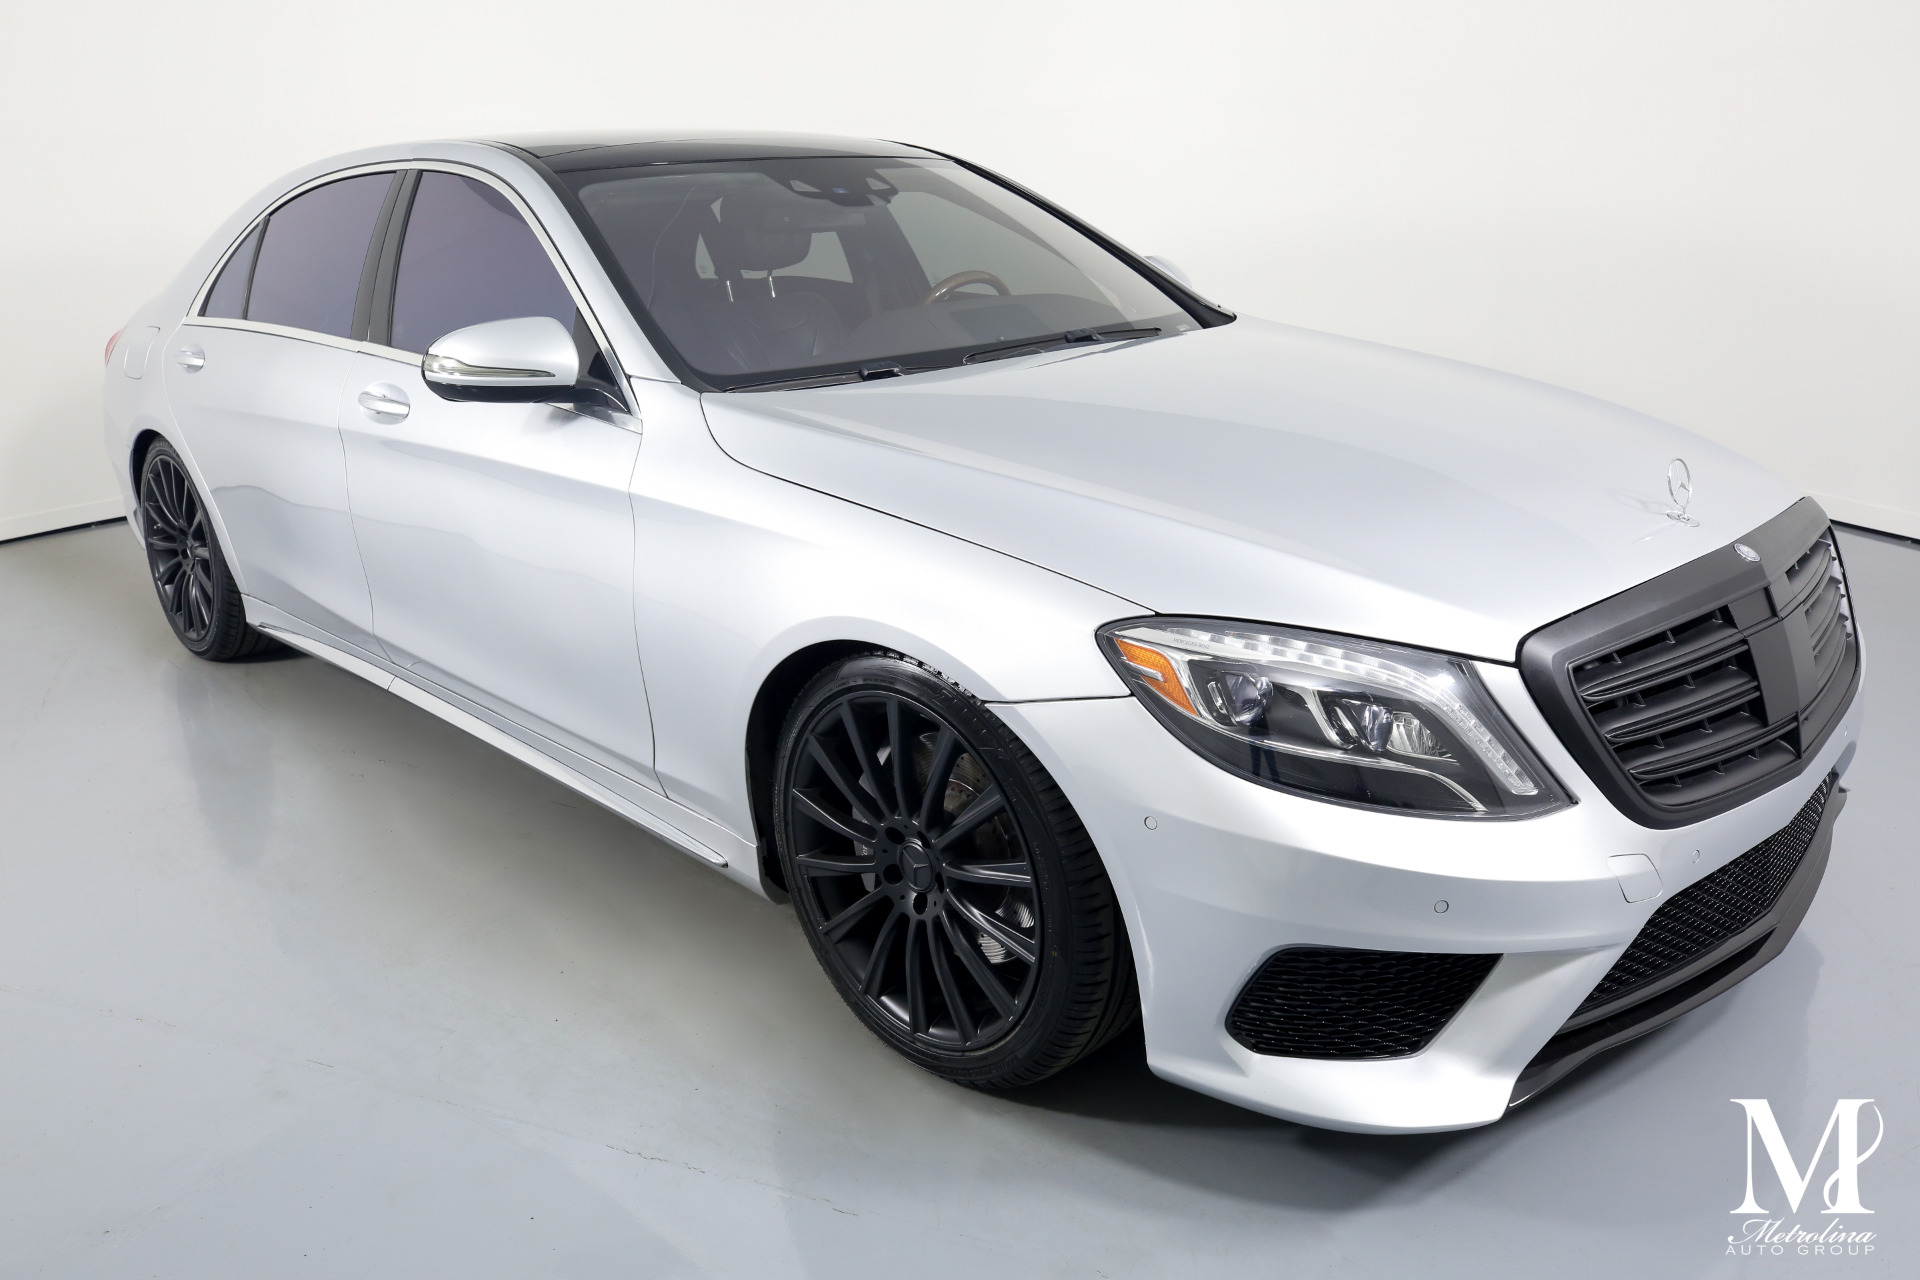 Used 2014 Mercedes-Benz S-Class S 550 for sale $44,996 at Metrolina Auto Group in Charlotte NC 28217 - 2